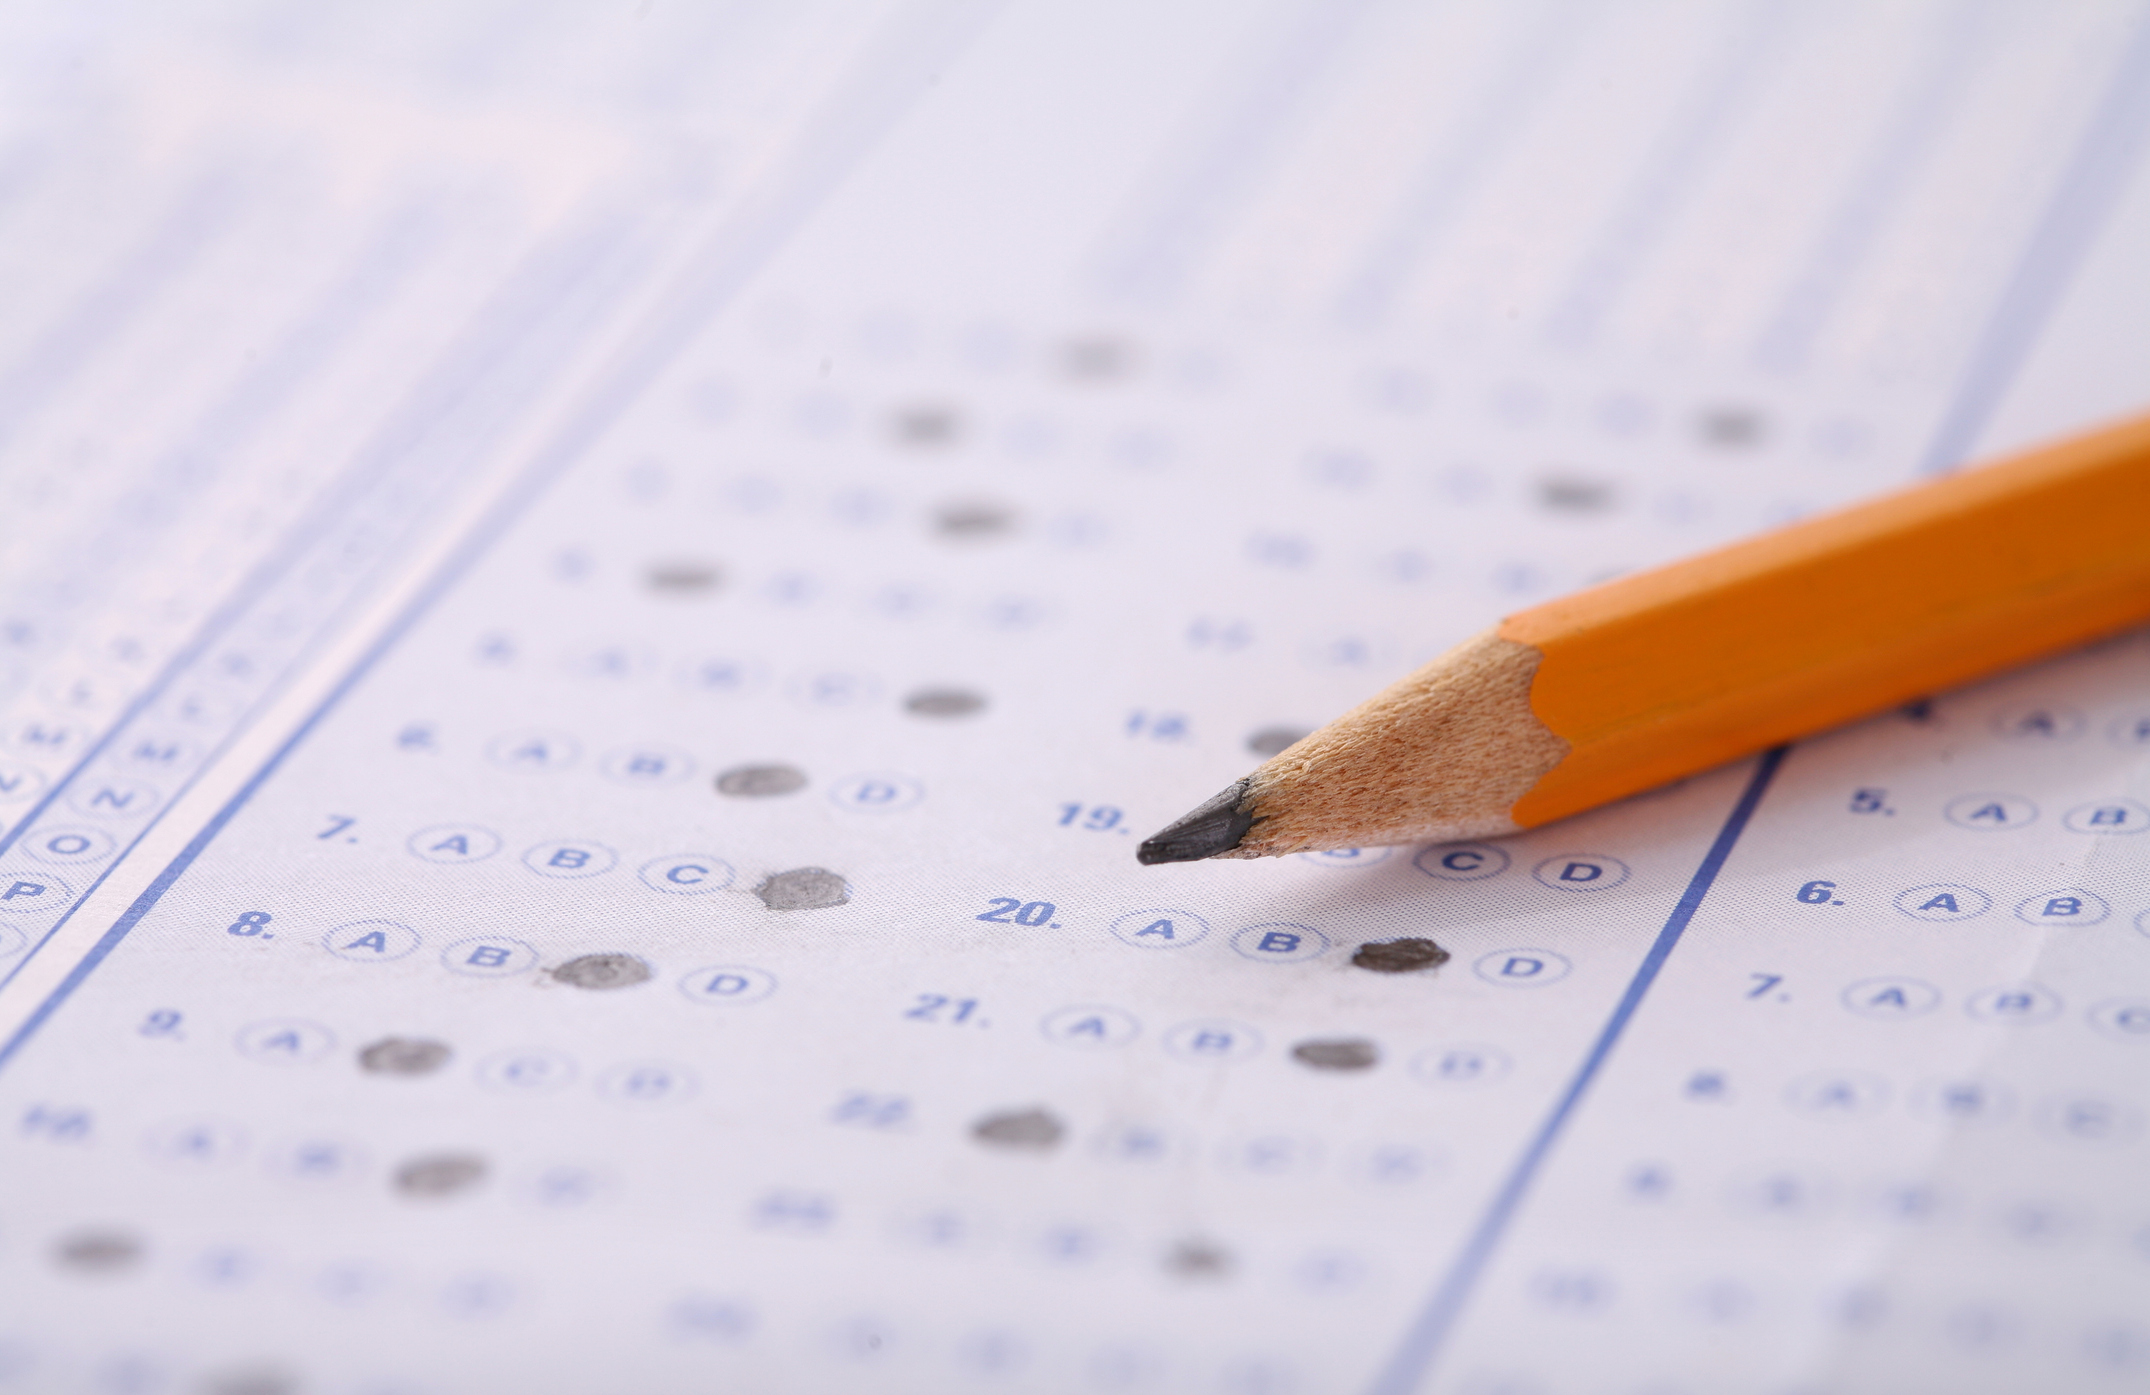 Bubble Sheet Test with Pencil. The College Board is starting a new 'adversity score' to measure the hardships that high school students face, but it doesn't include race.